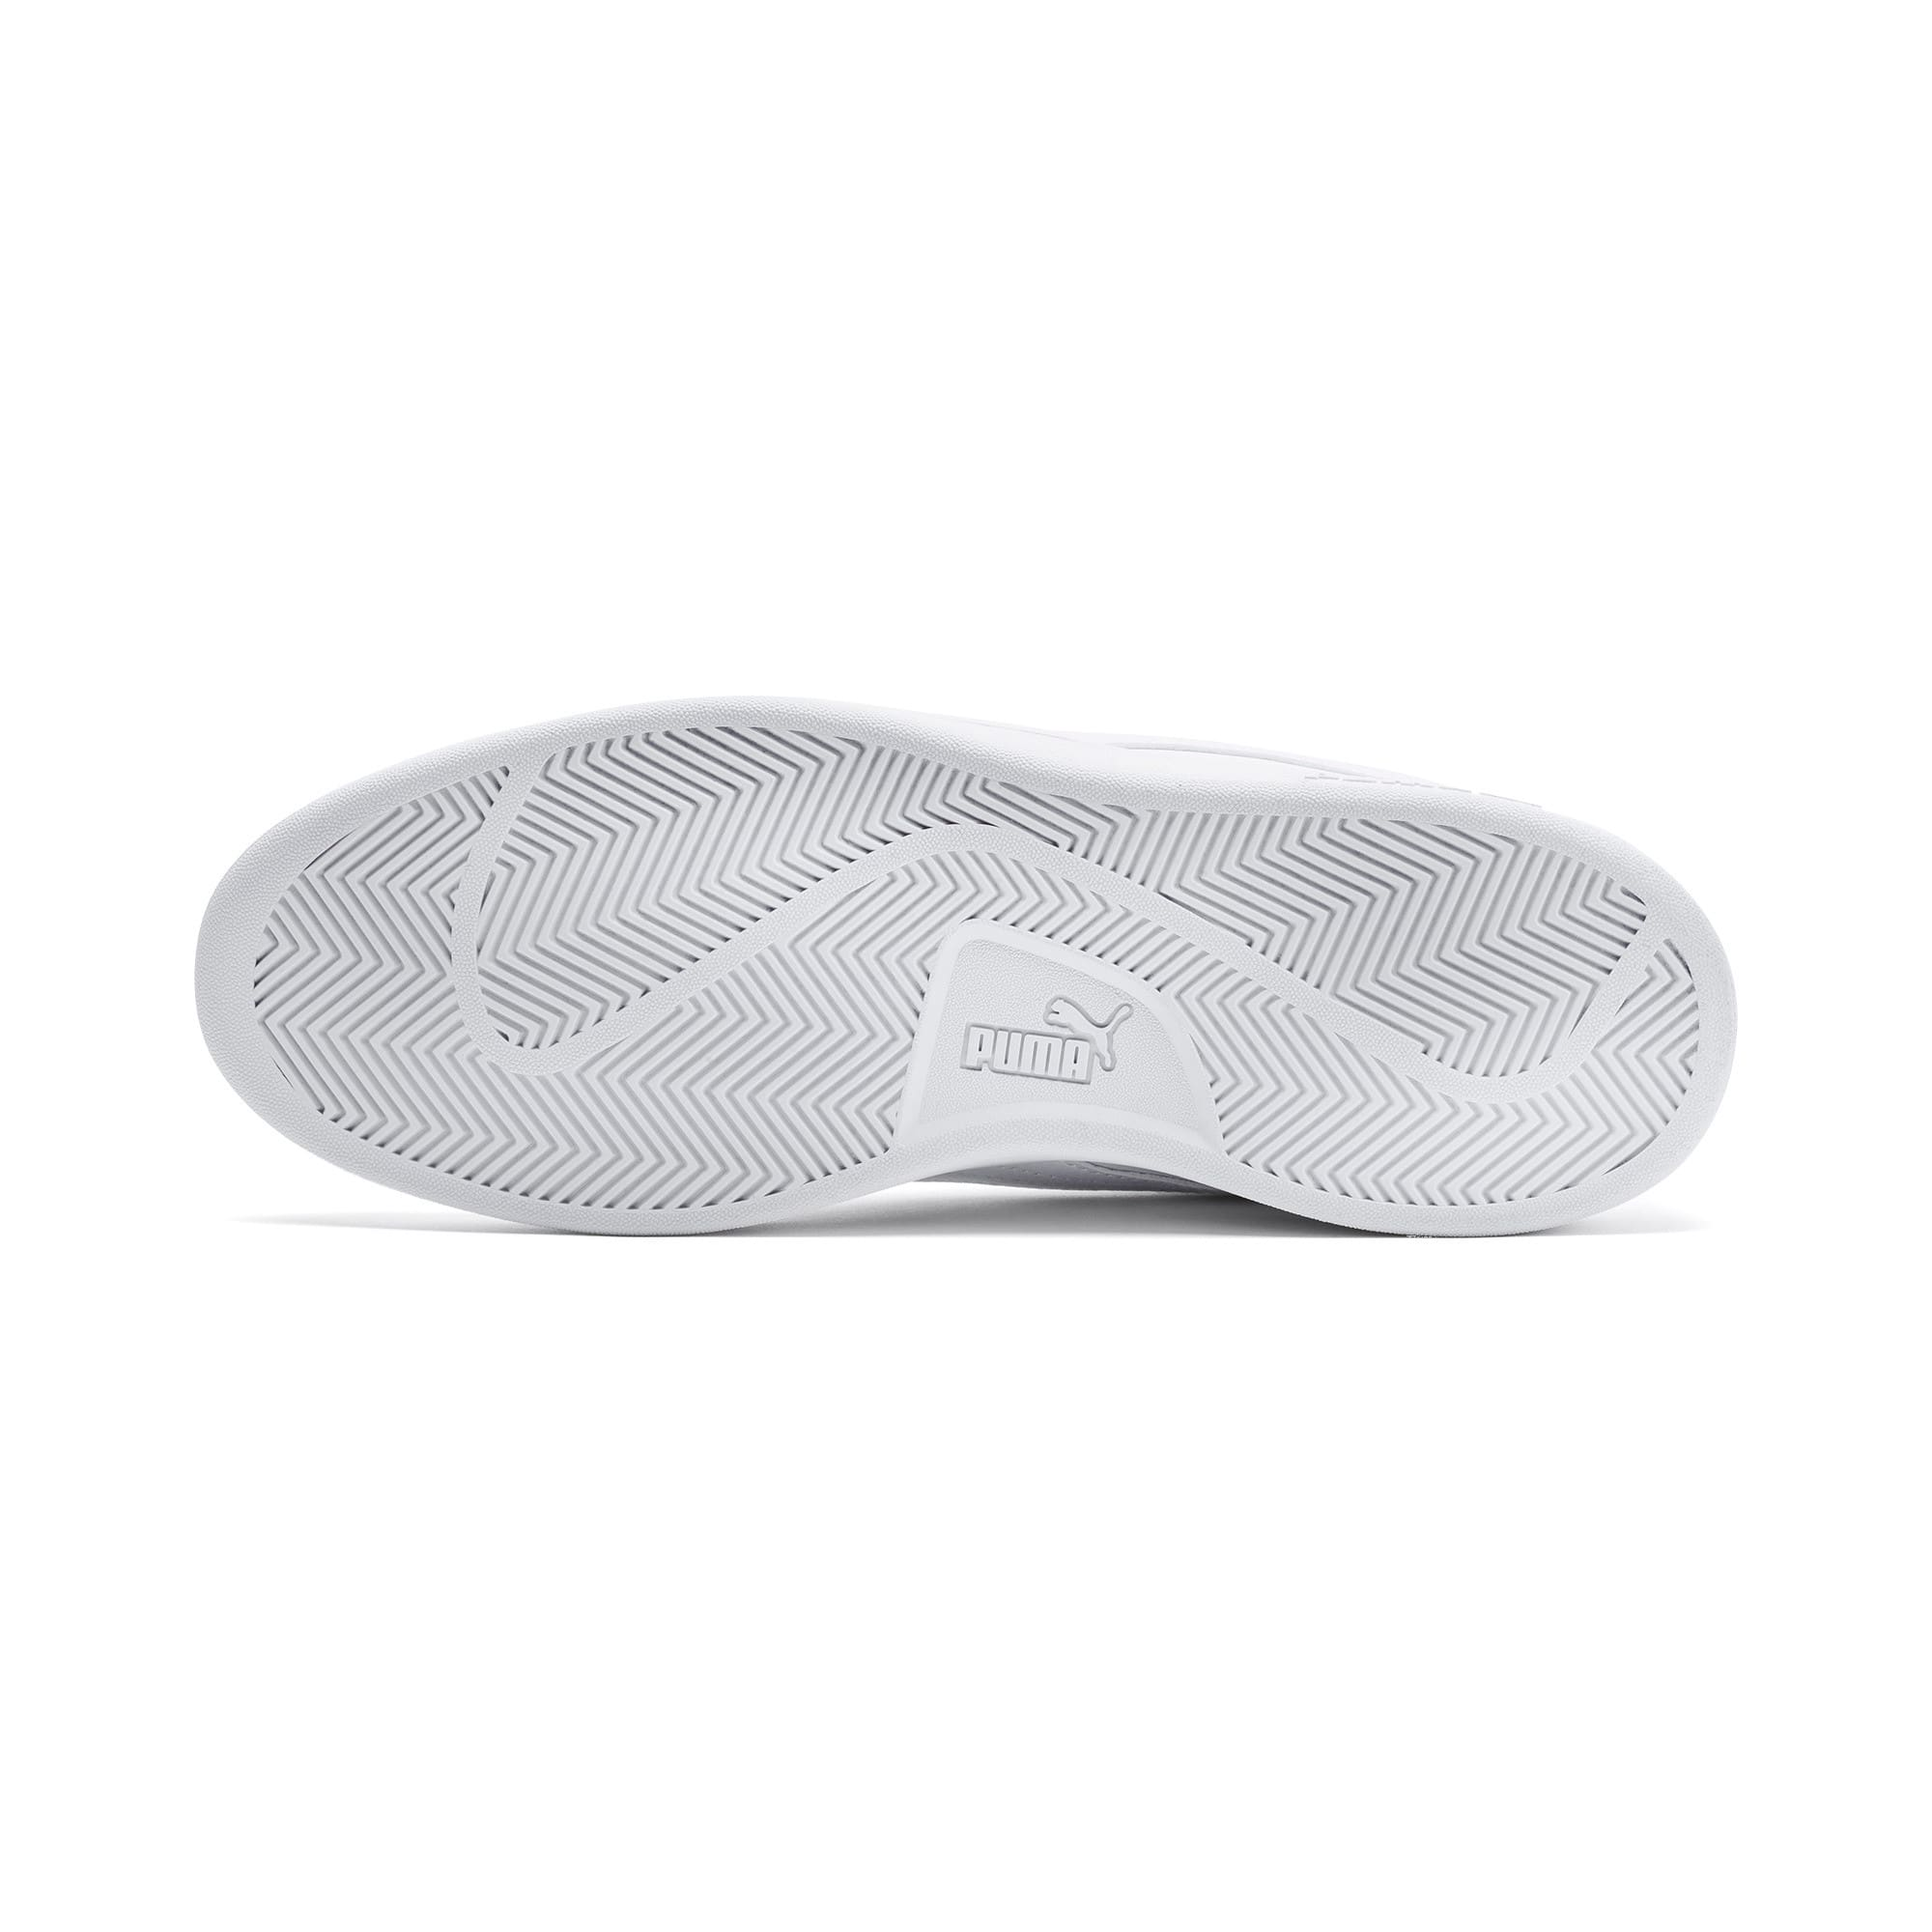 Thumbnail 4 of Puma Smash v2 L, Puma White-Puma White, medium